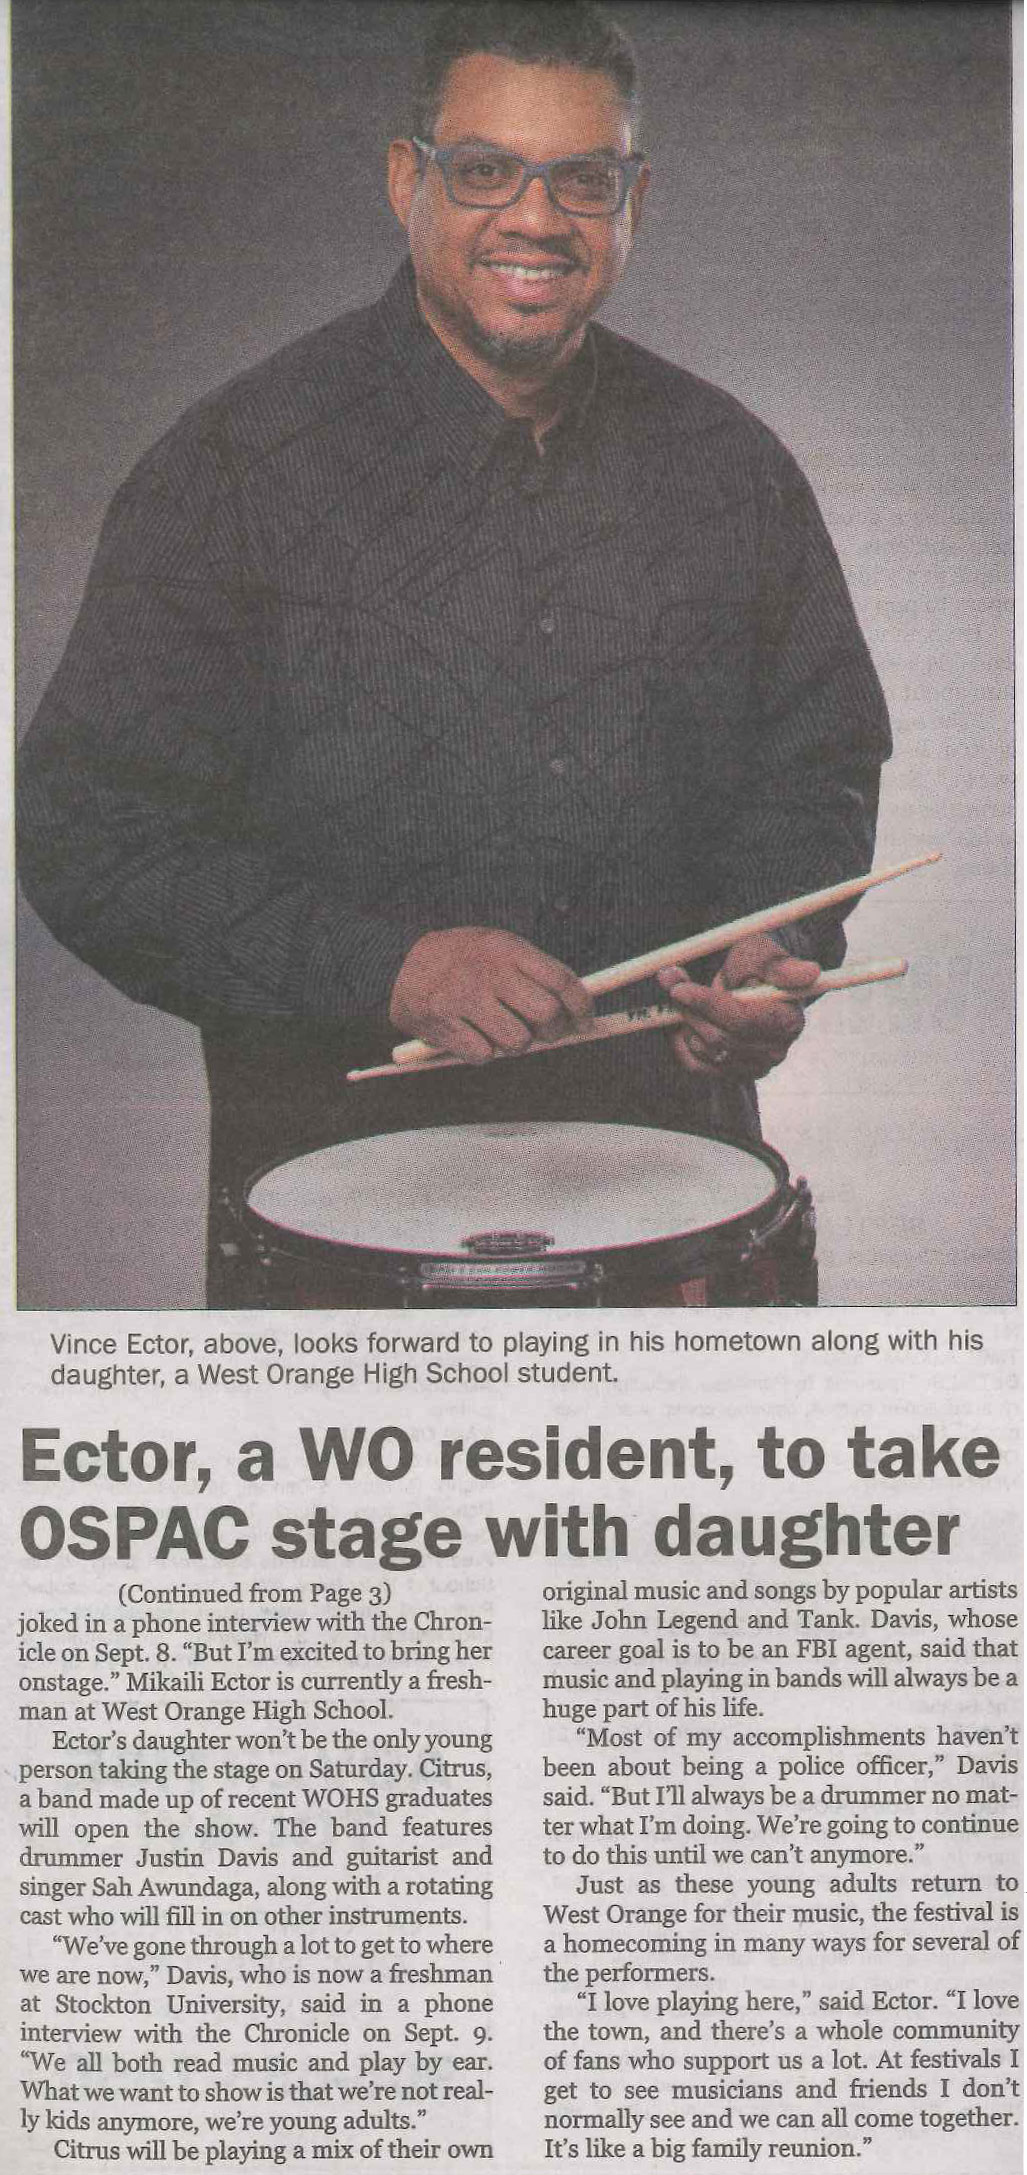 Ector, a WO resident, to take OSPAC stage with daughter